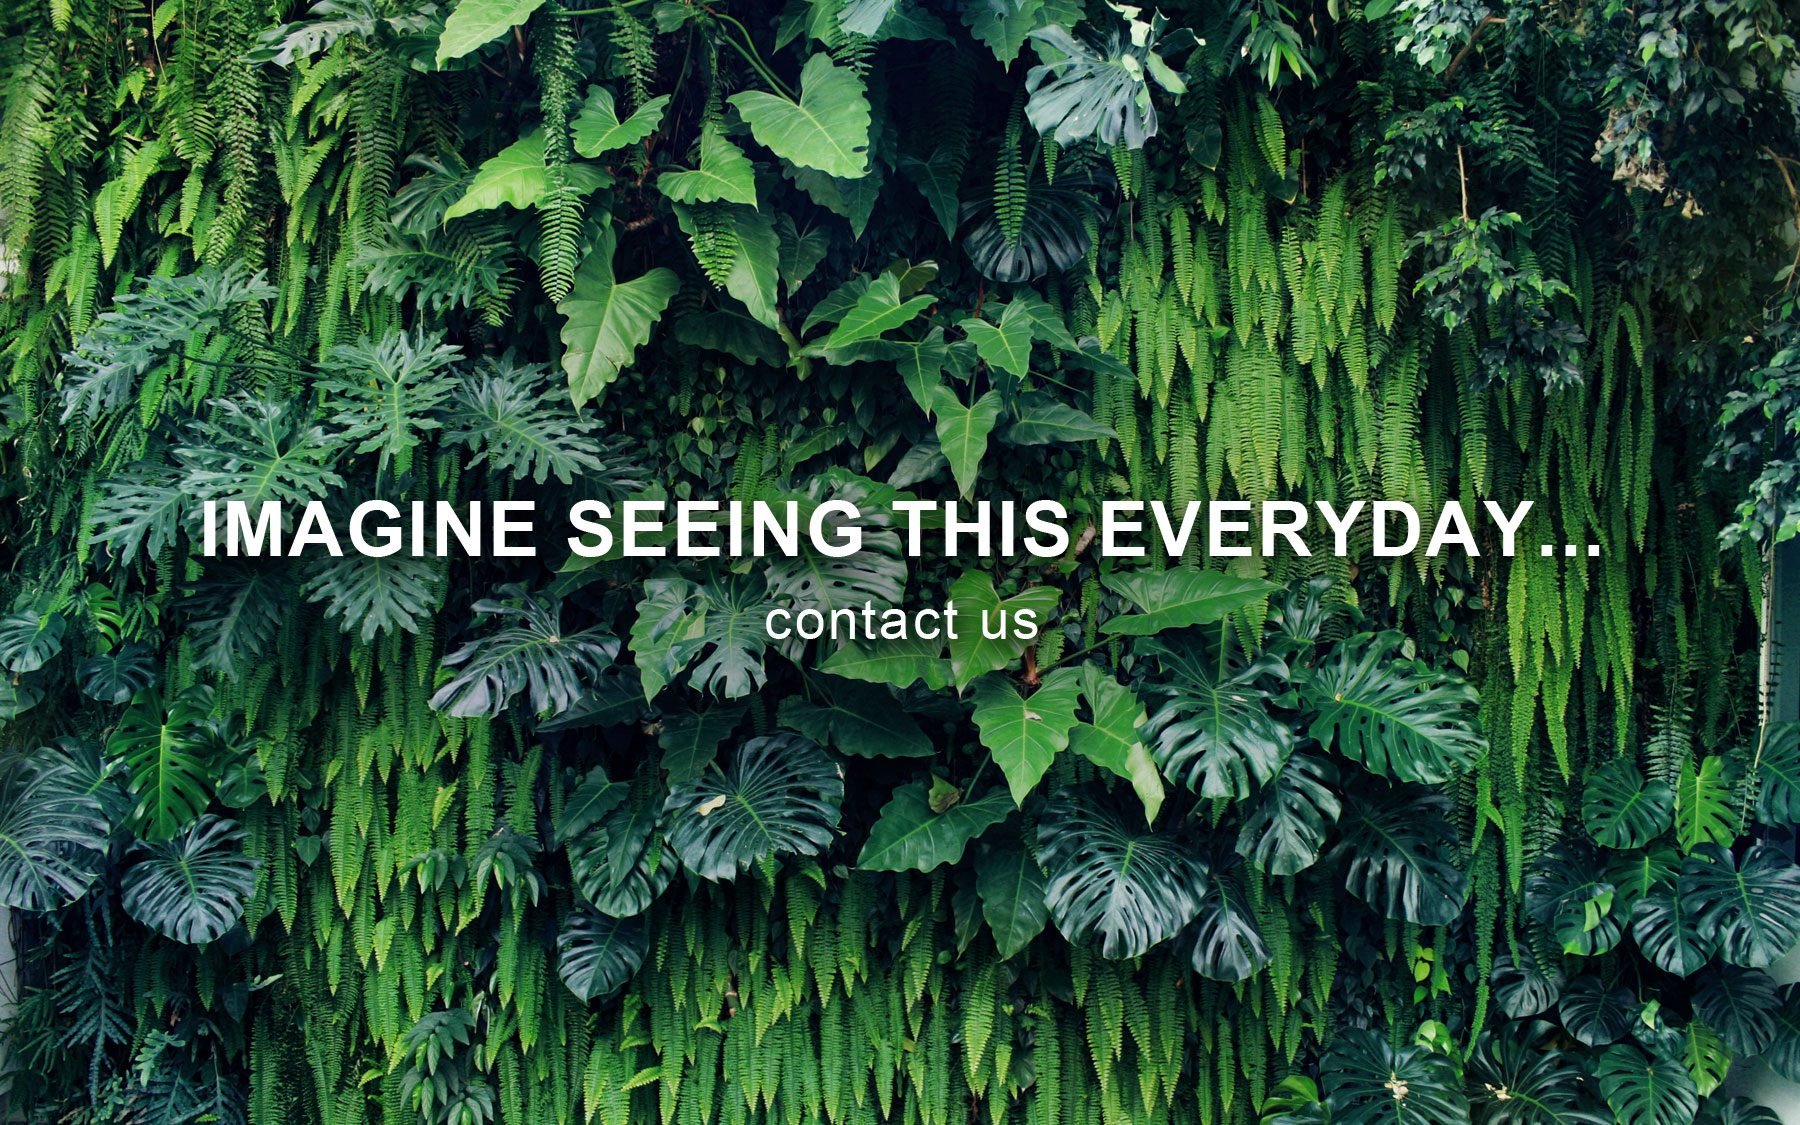 At Mingzhu Nerval, we thrive at creating the most beautiful vertical gardens in the world. The higher are your requirements, the more we're interested in working with you.